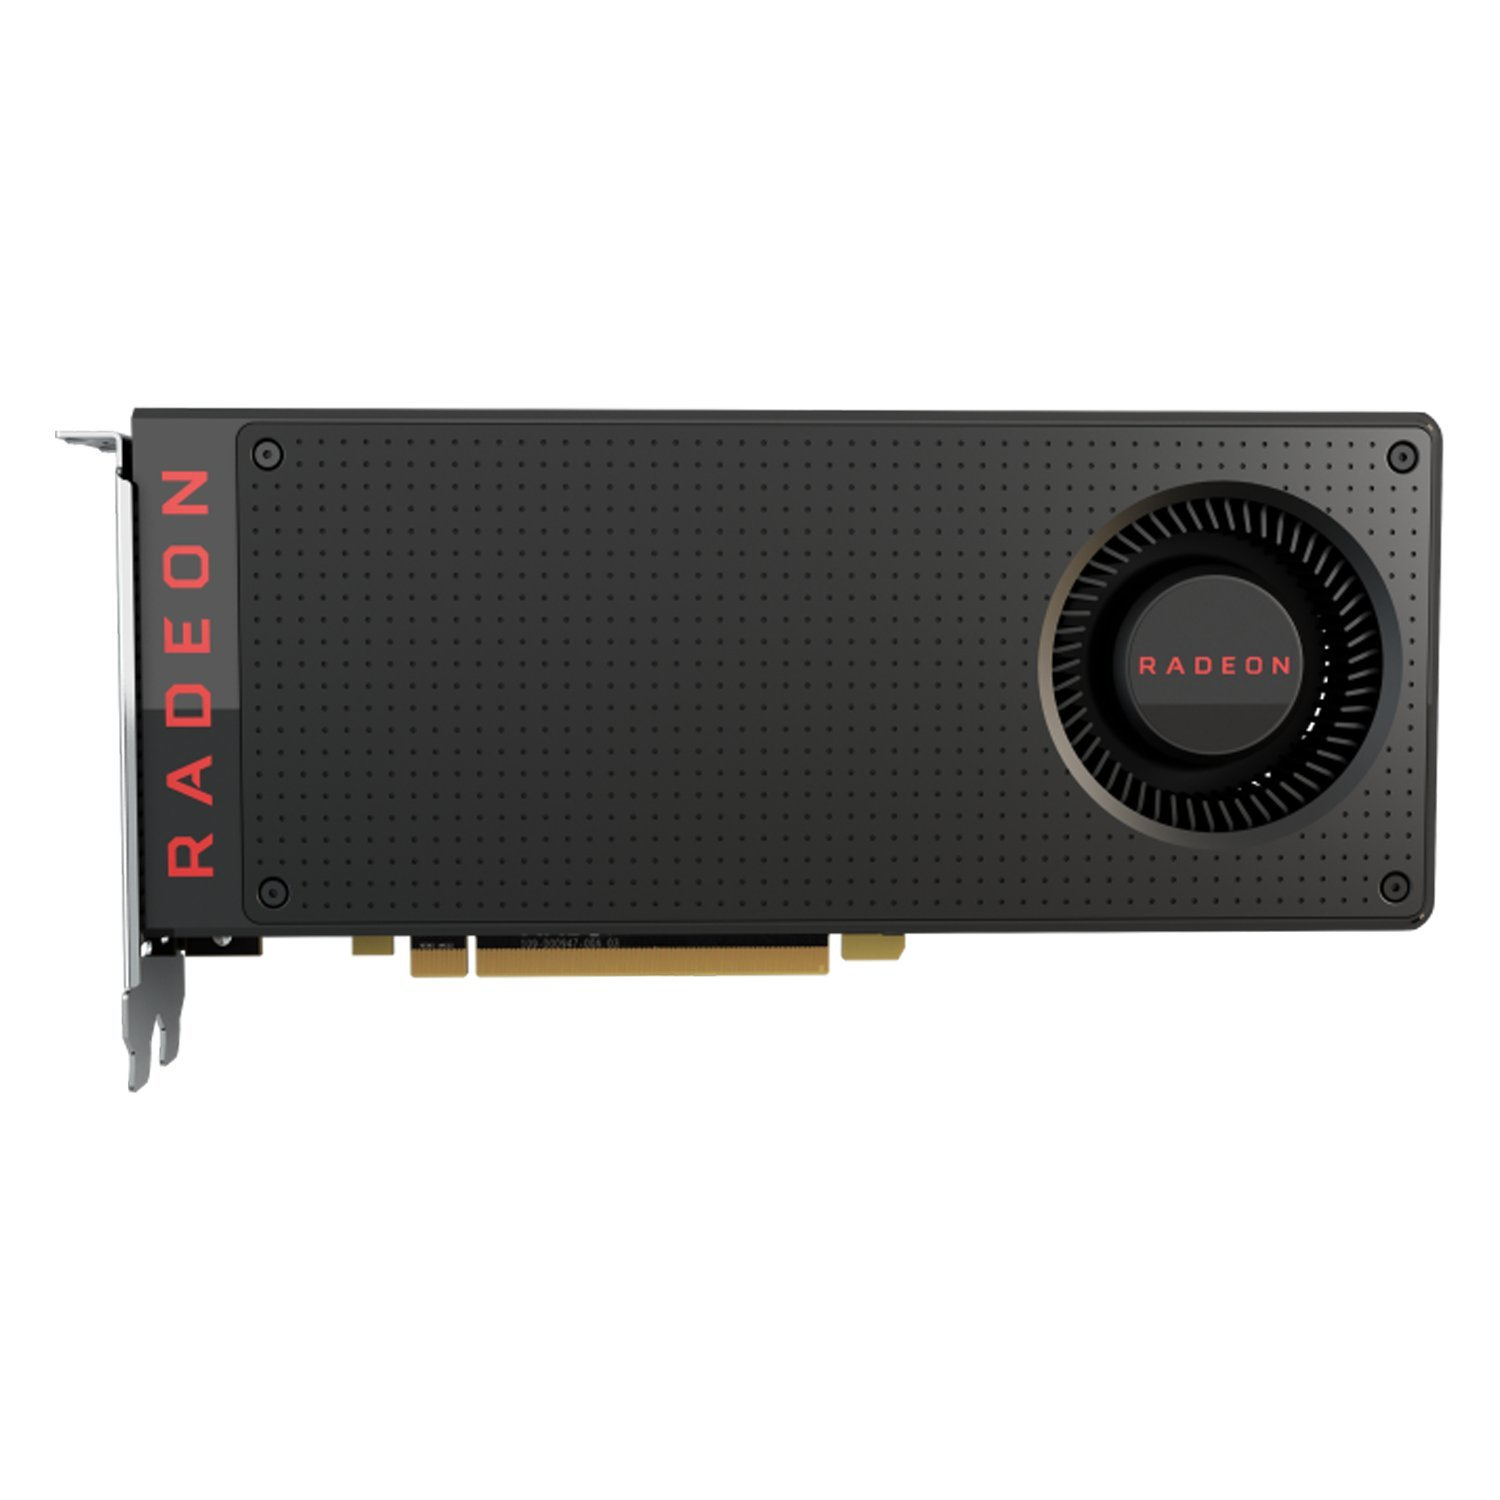 USED,Sapphire RX 570 Single fan 4G graphics cards 7000MHz GDDR5 256bits HDMI+DP*3 PCI-X16(China)